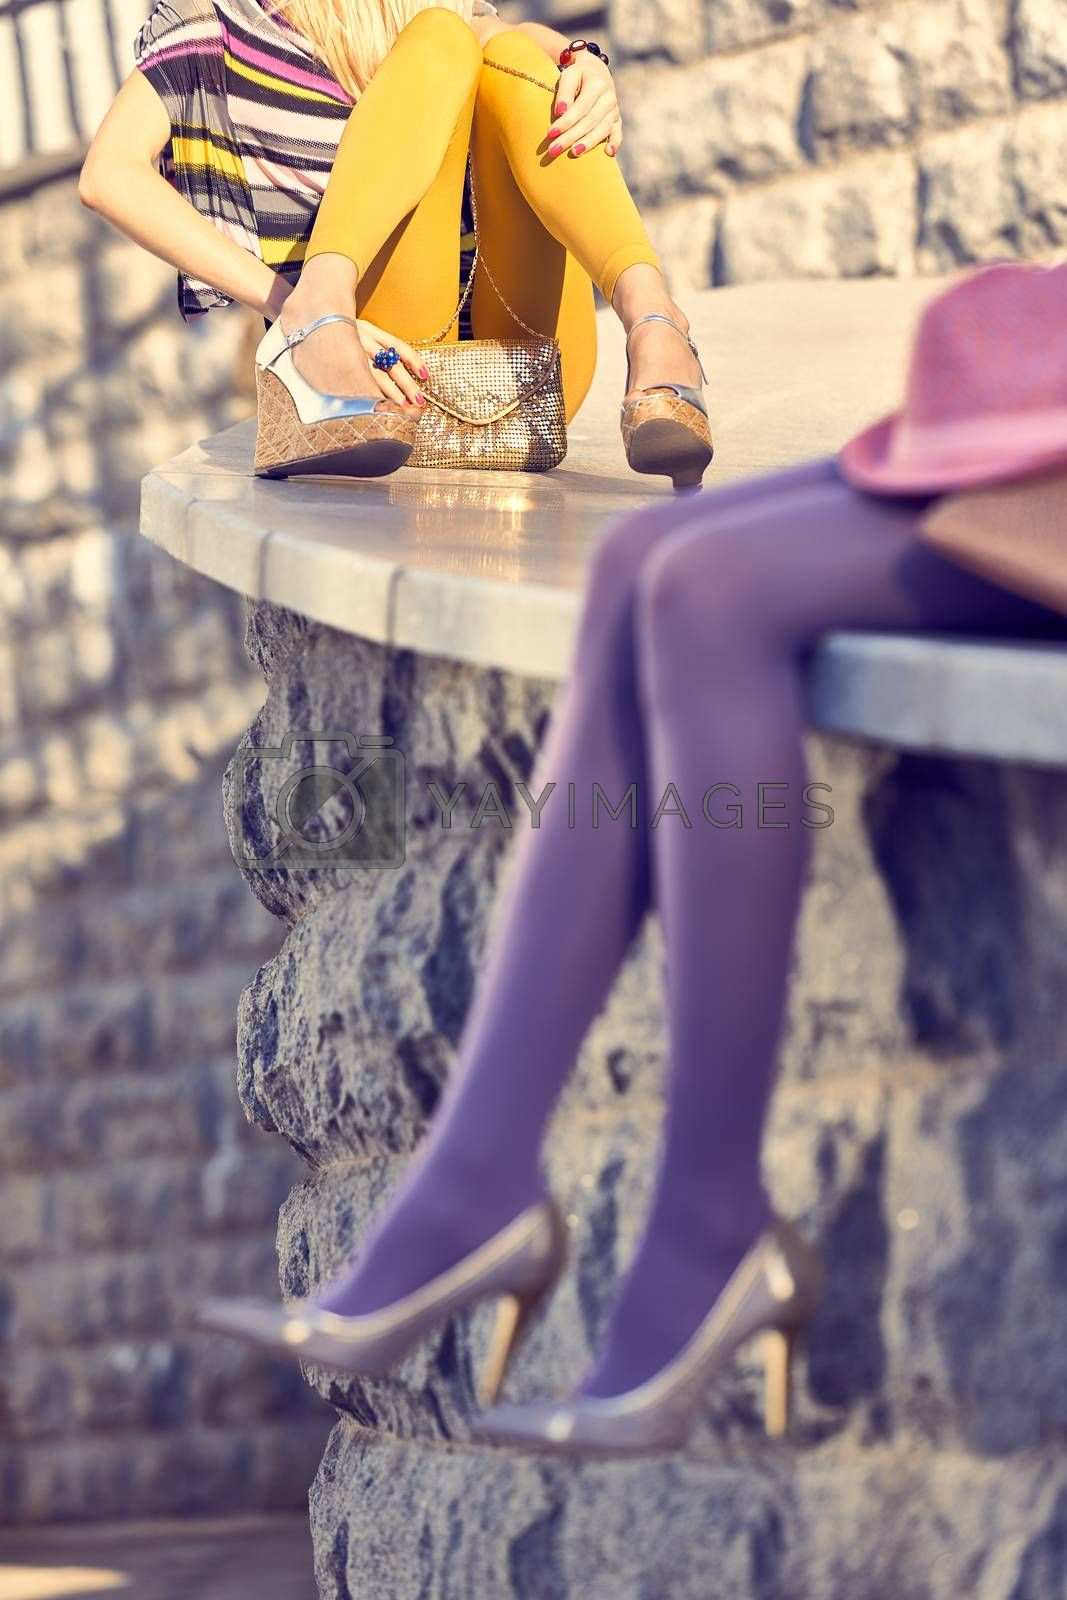 Fashion urban beauty people friends,outdoor.Womens sexy legs, pantyhose, stylish shoes, clutches.Playful hipster girls in trendy dresses.Stone wall background.Creative unusual. Vivid party lifestyle